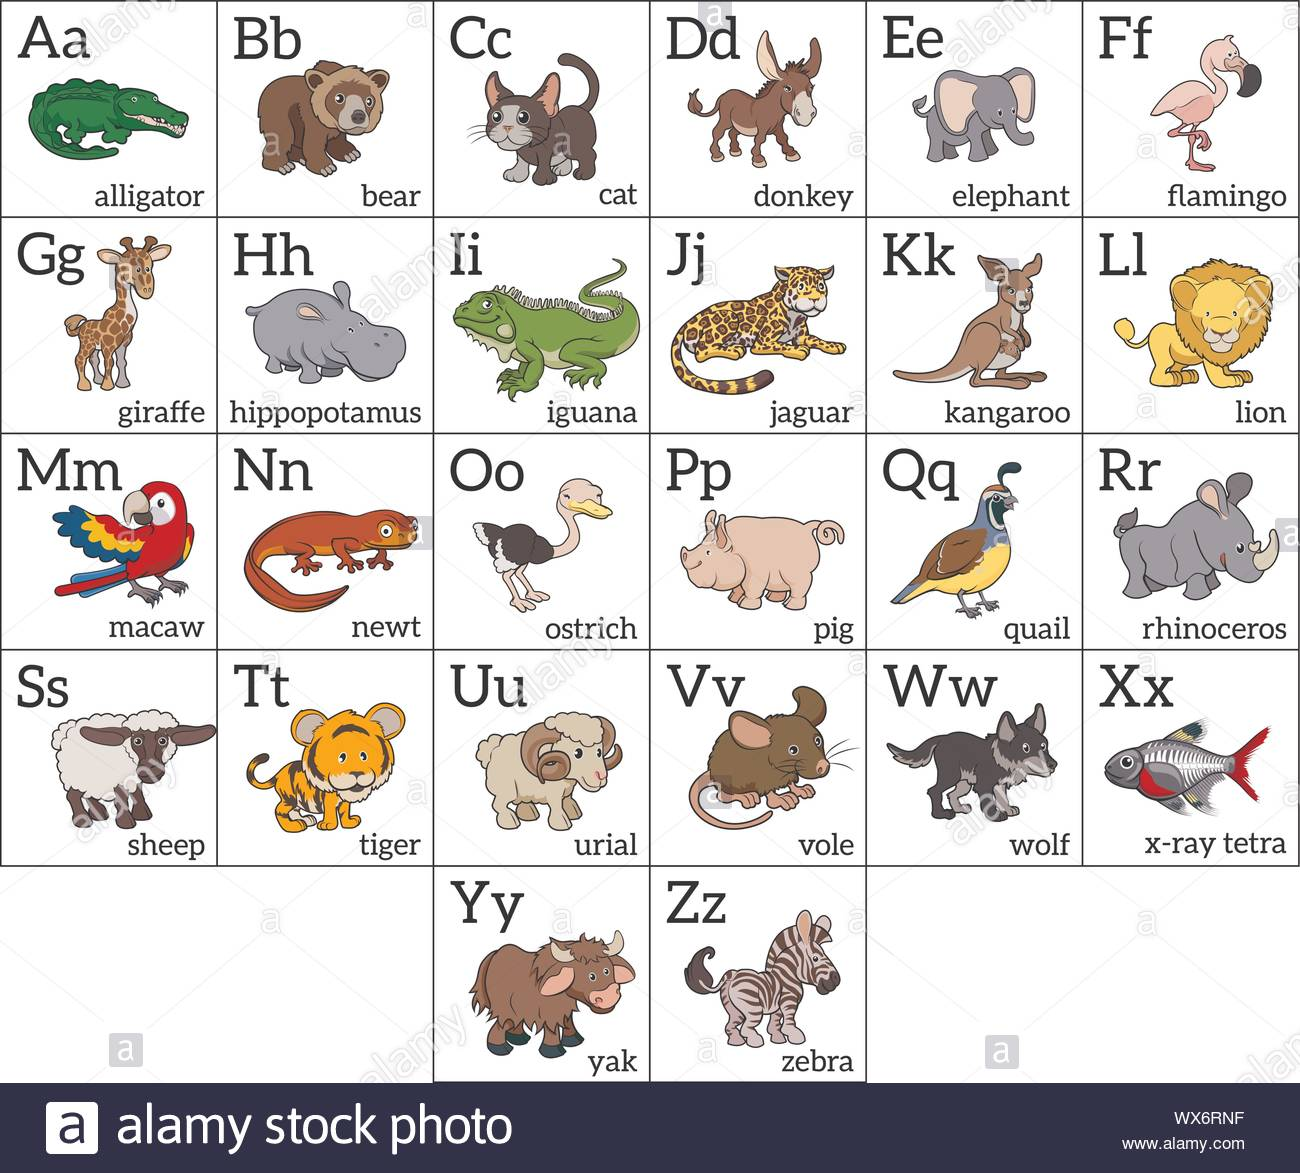 Abc Chart High Resolution Stock Photography And Images Alamy The alphabet chart is a free resource for teachers, parents, studens our handy abc chart is the simplest alphabet chart available to get back to teaching and. https www alamy com cartoon animal alphabet chart image274286923 html